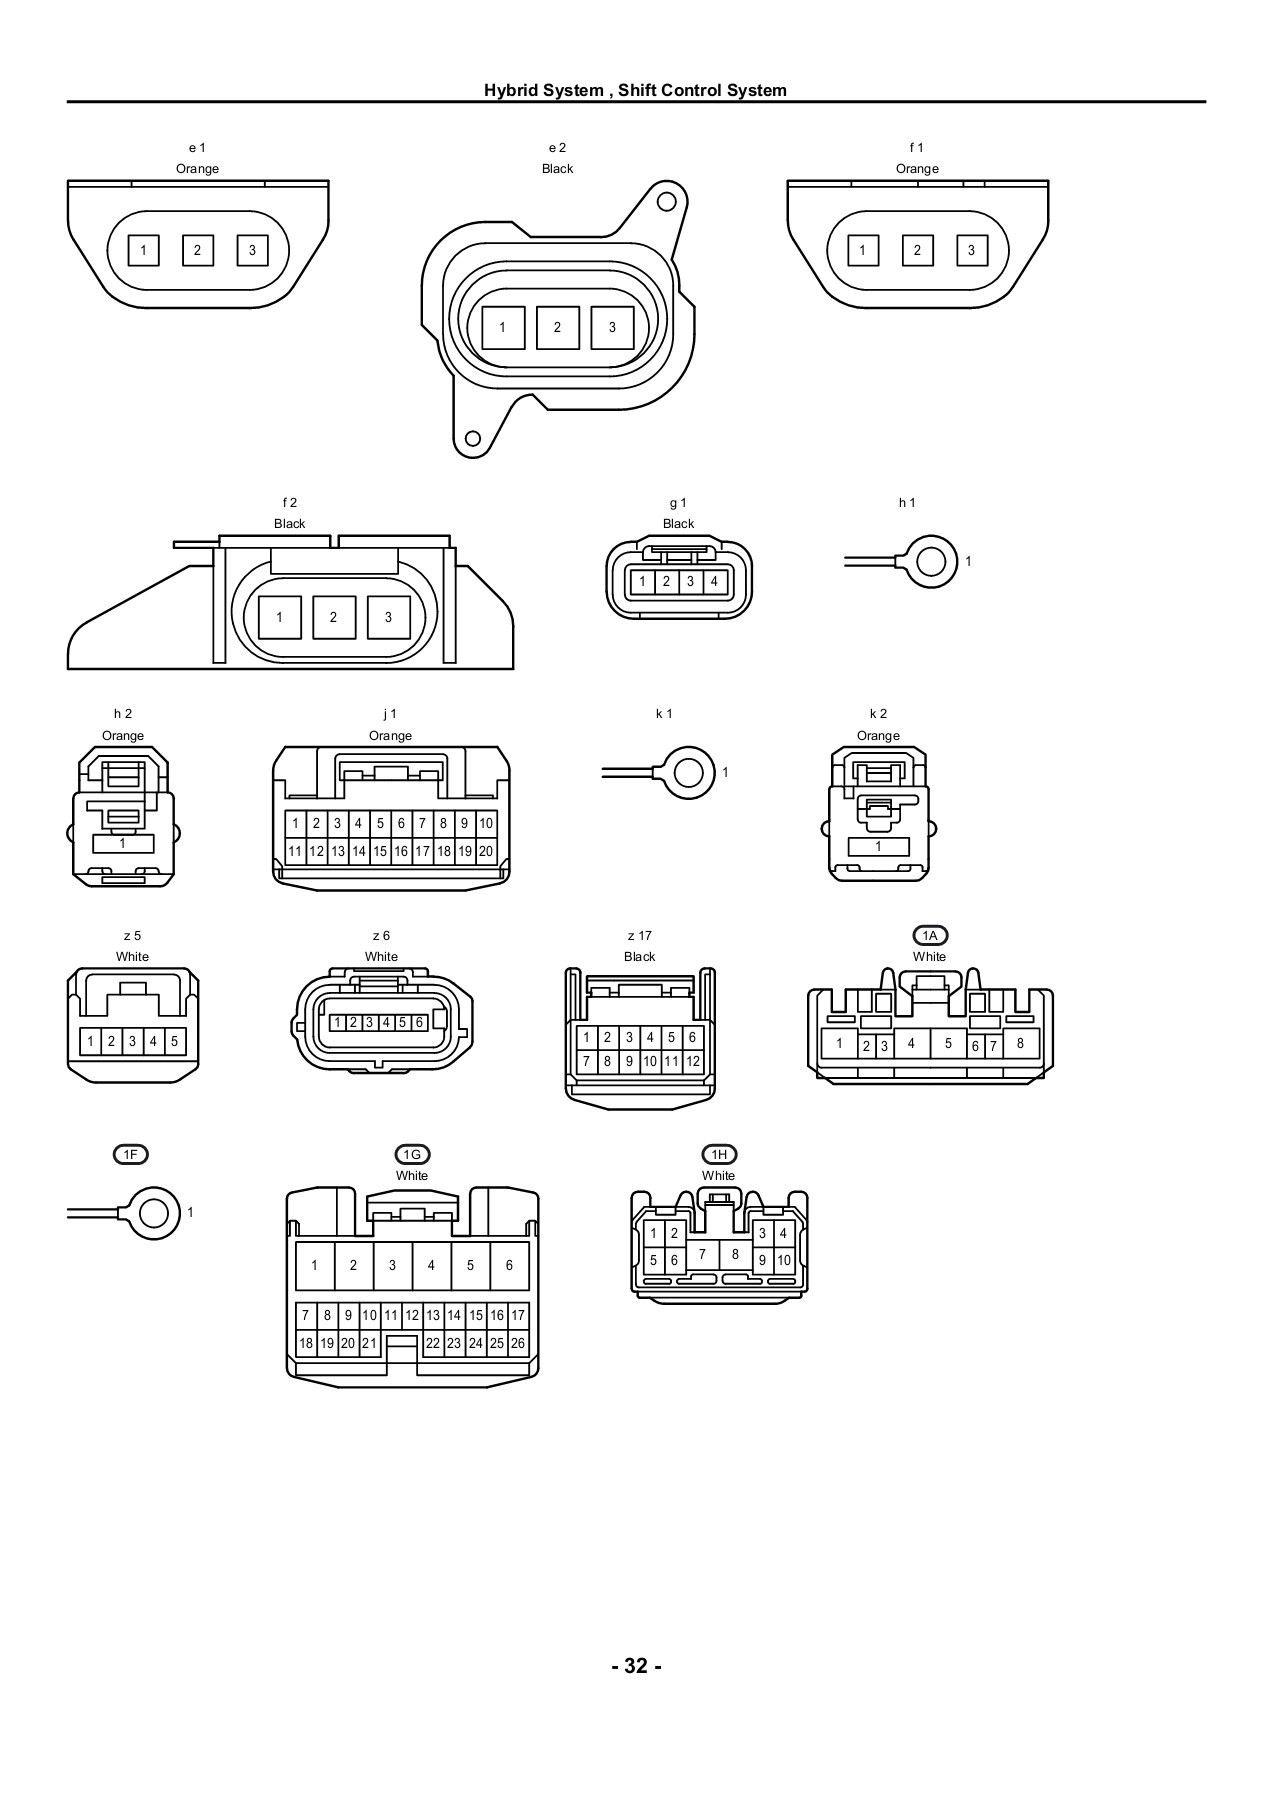 toyota prius 2010 electrical wiring diagrams pages 251 300 text version fliphtml5 [ 1273 x 1800 Pixel ]